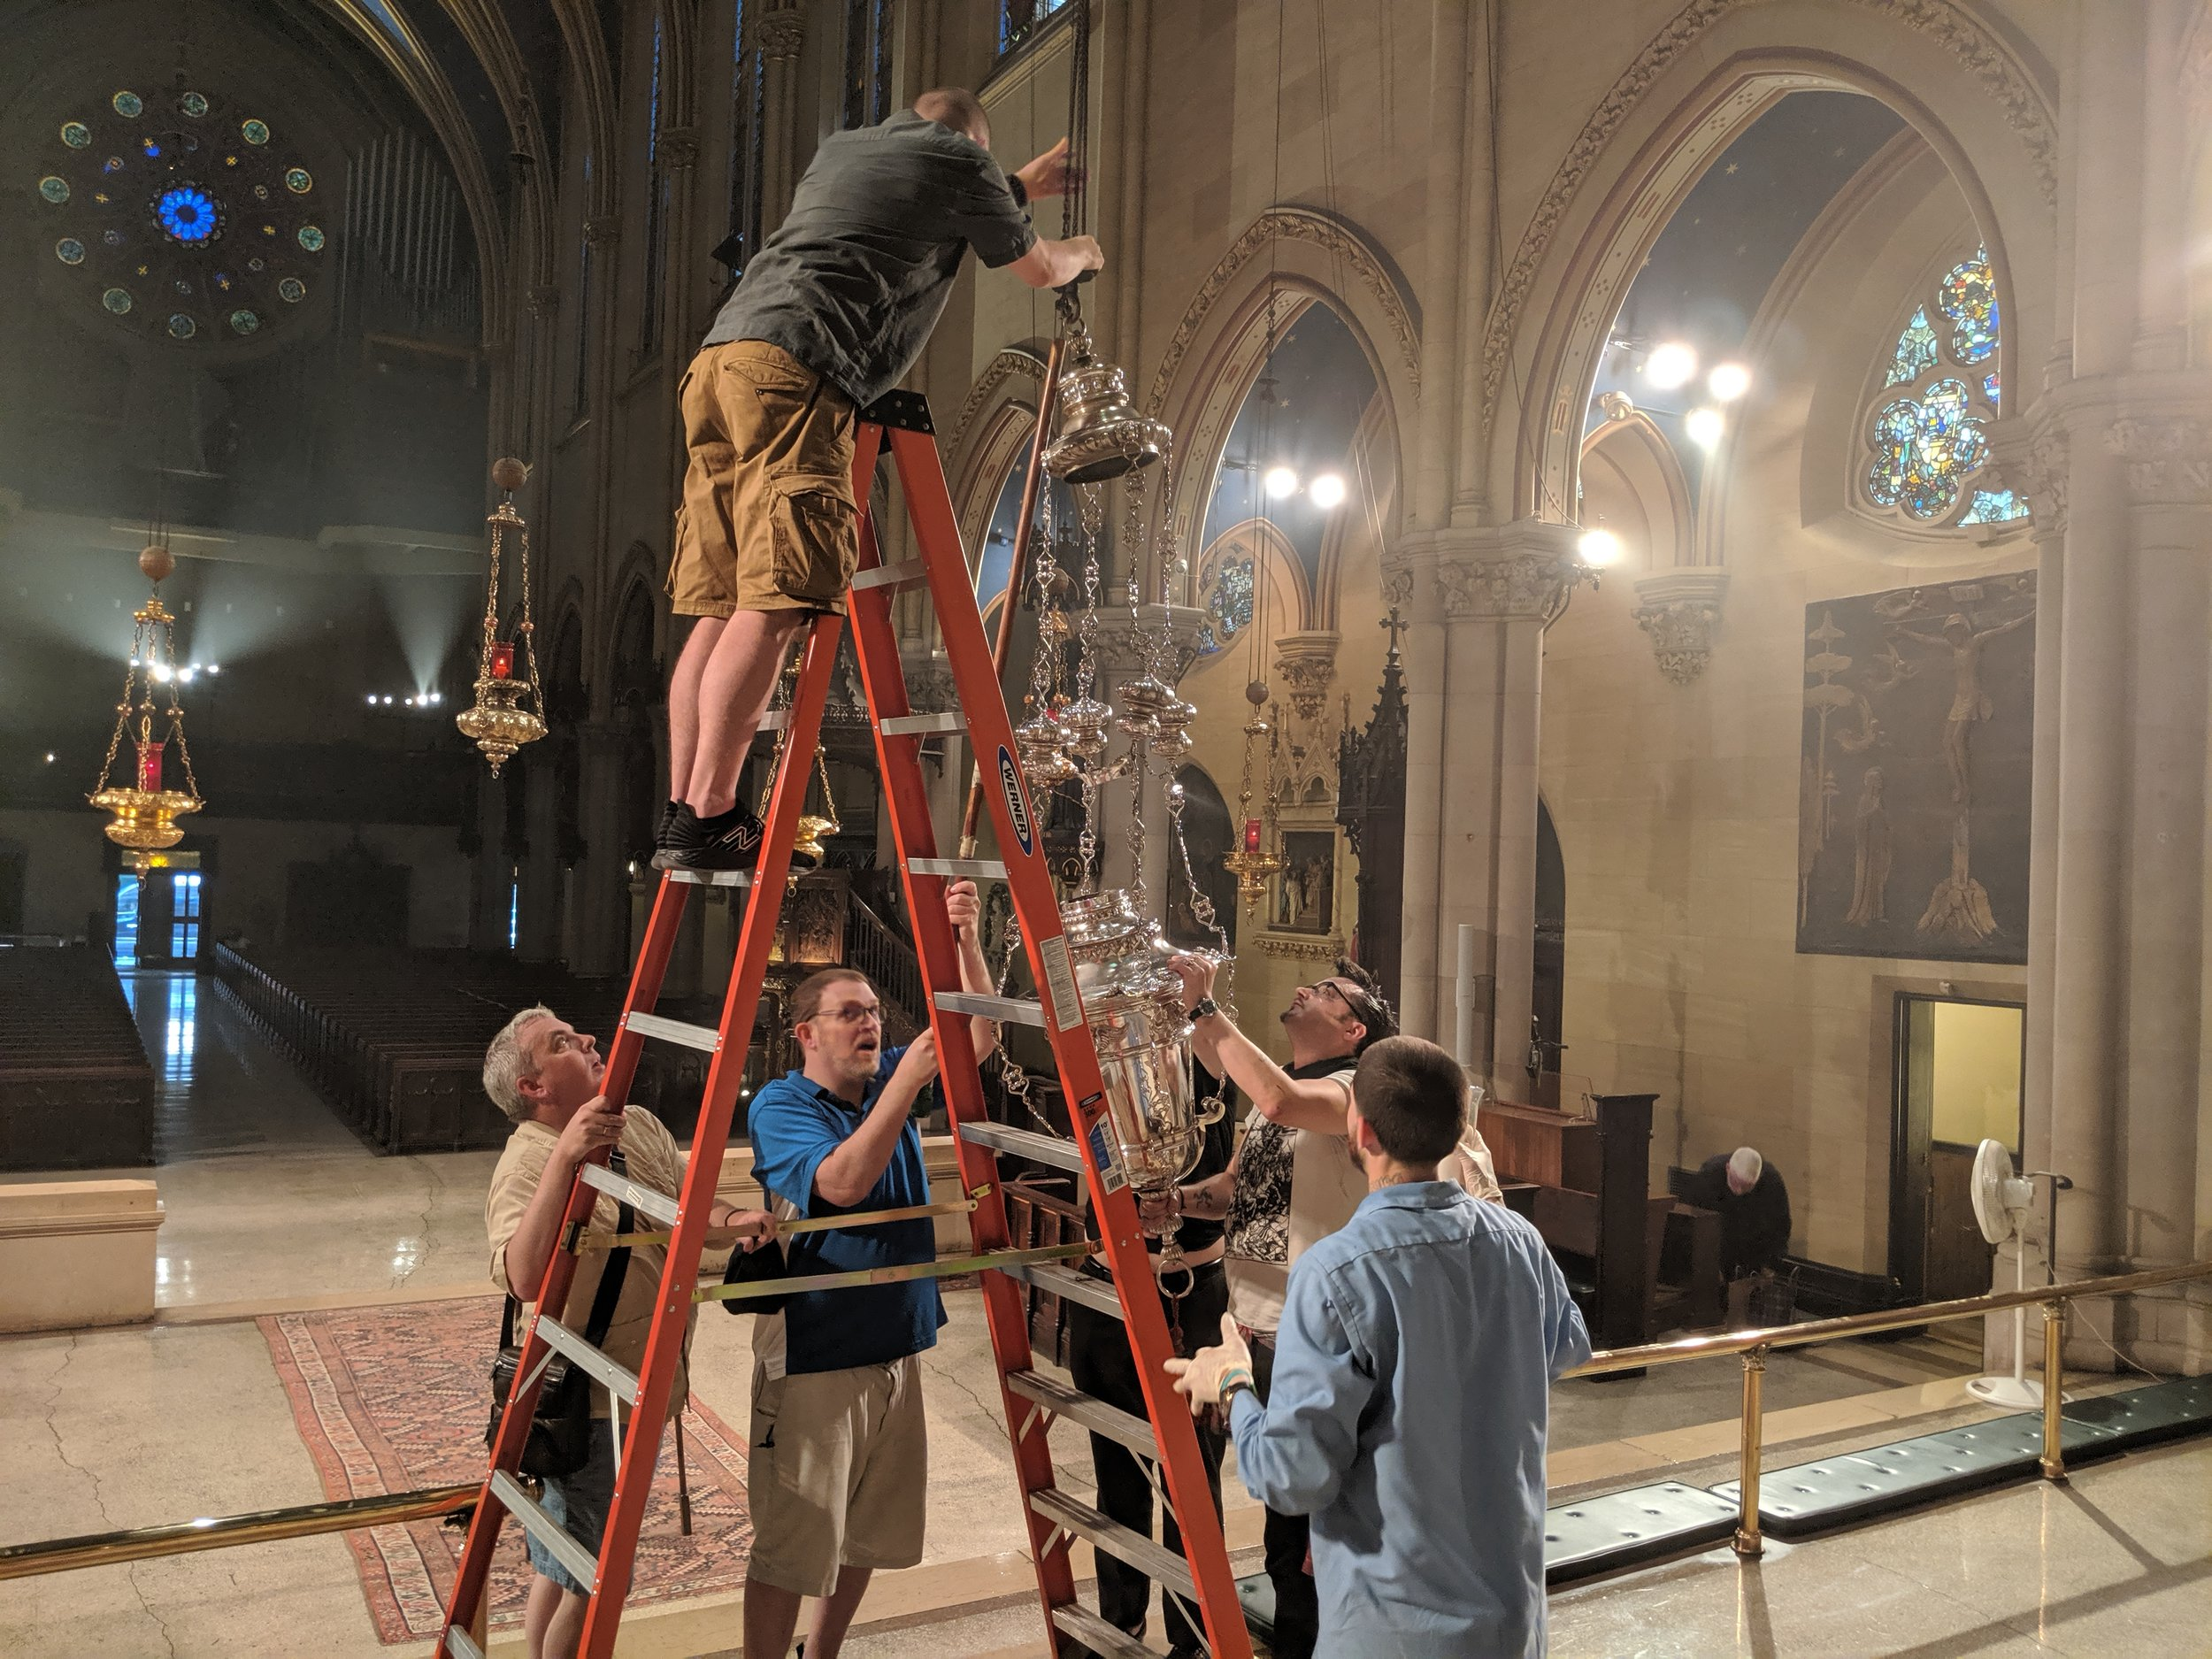 After the Solemn Mass on Sunday, July 21, 2019, the large silver lamp that signals the presence of the Sacrament was rehung after conservation by Matthew Hanlon Restorations.  Photo:  Grace Mudd